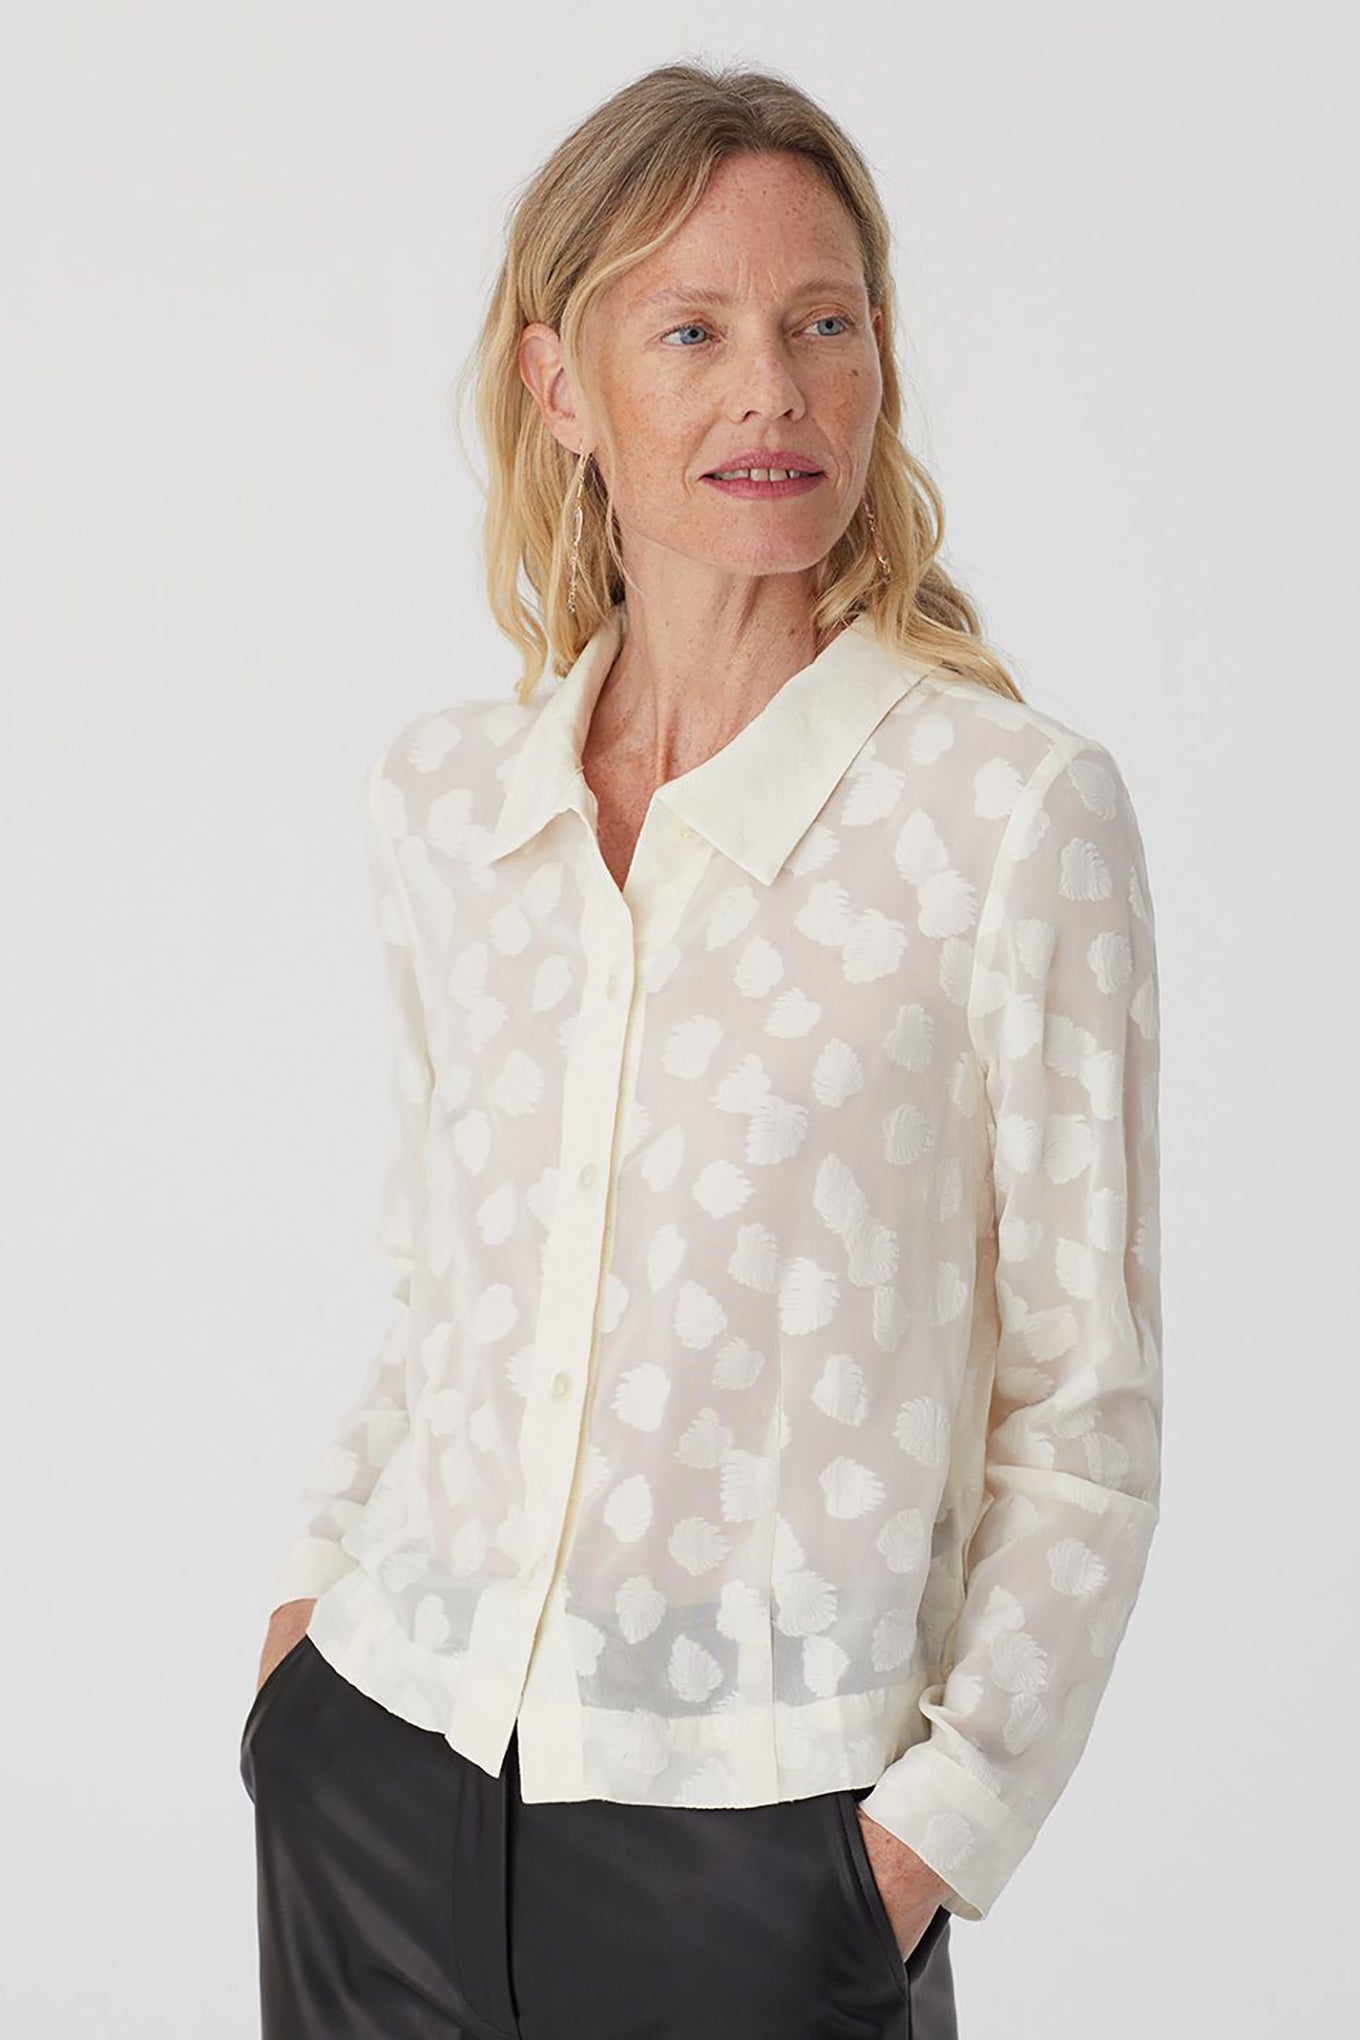 Nice Things by Paloma S designed in Barcelona Spain ecru leaf print cropped button up shirt.